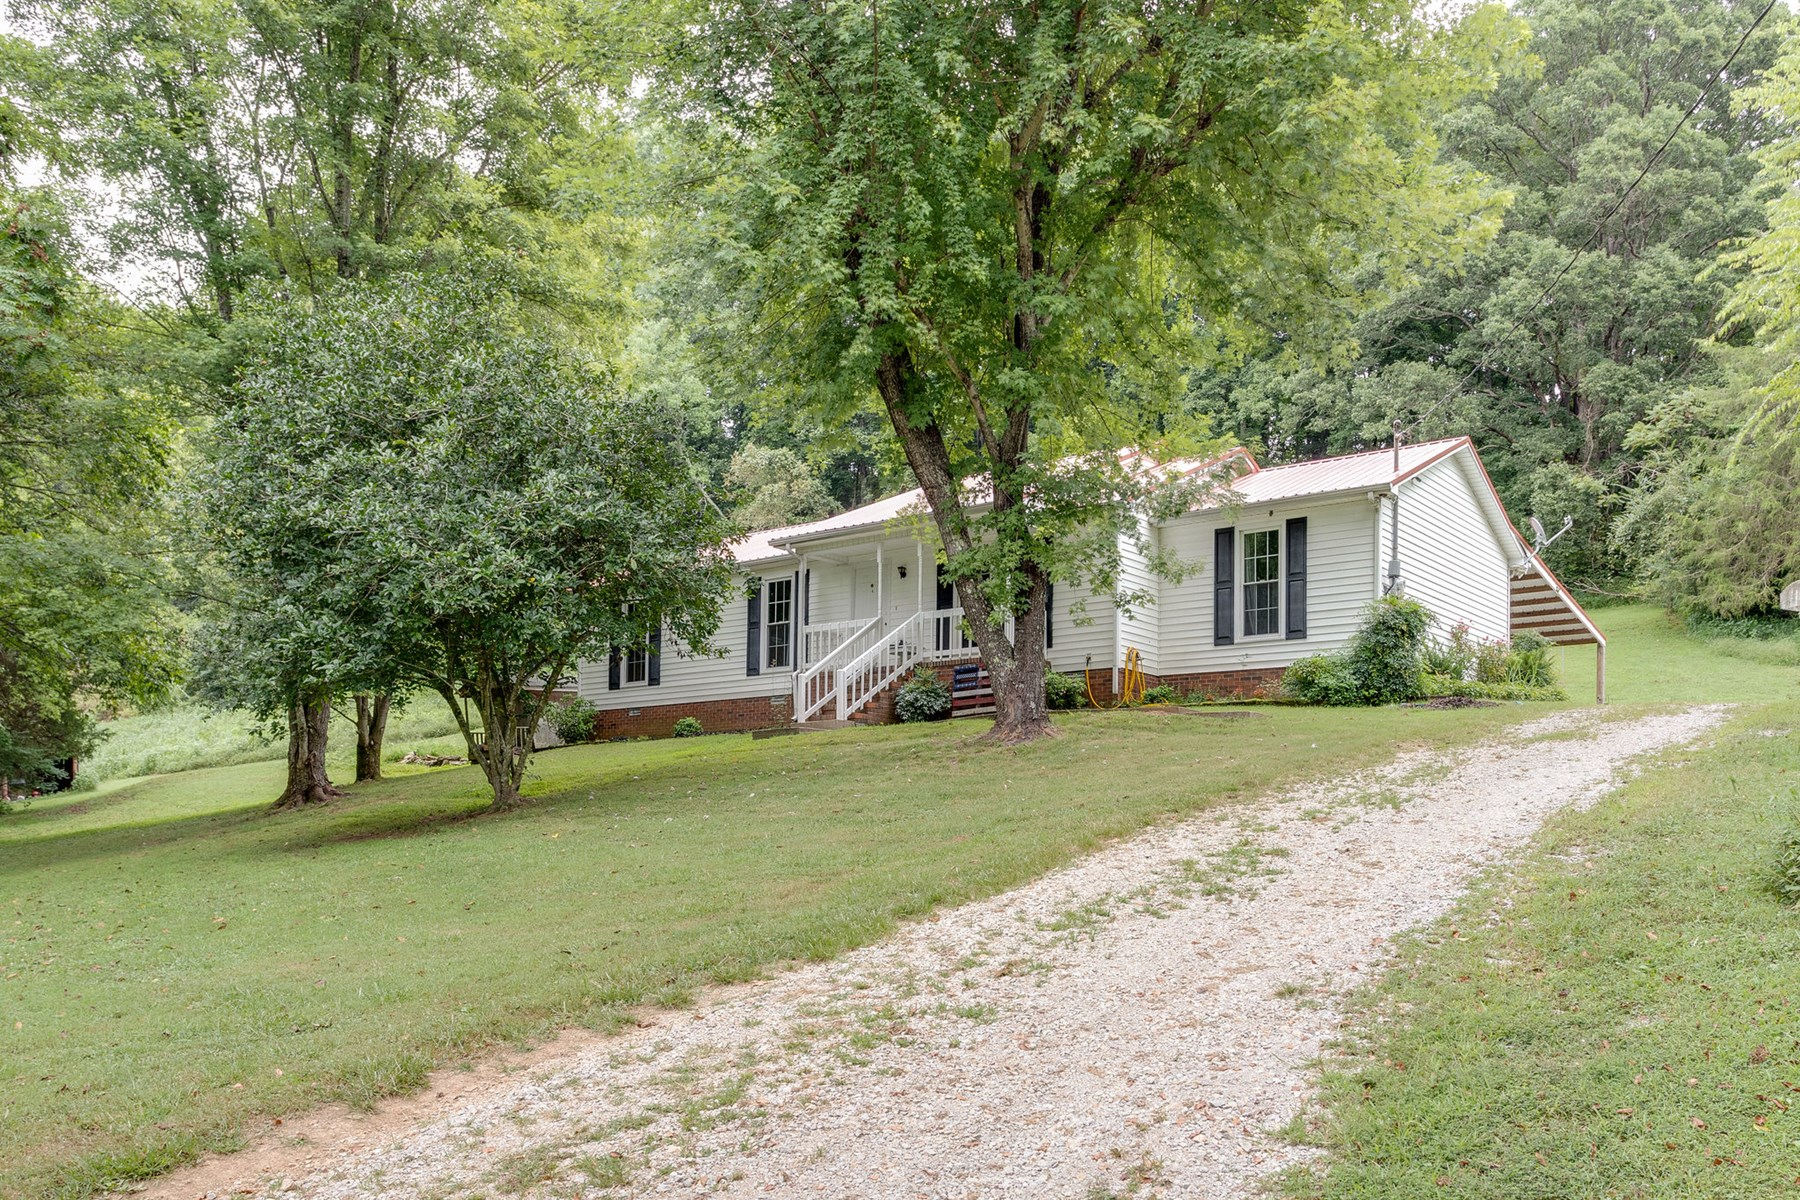 3 Bedroom/3 Full Bath Home in, Lynnville Tennessee